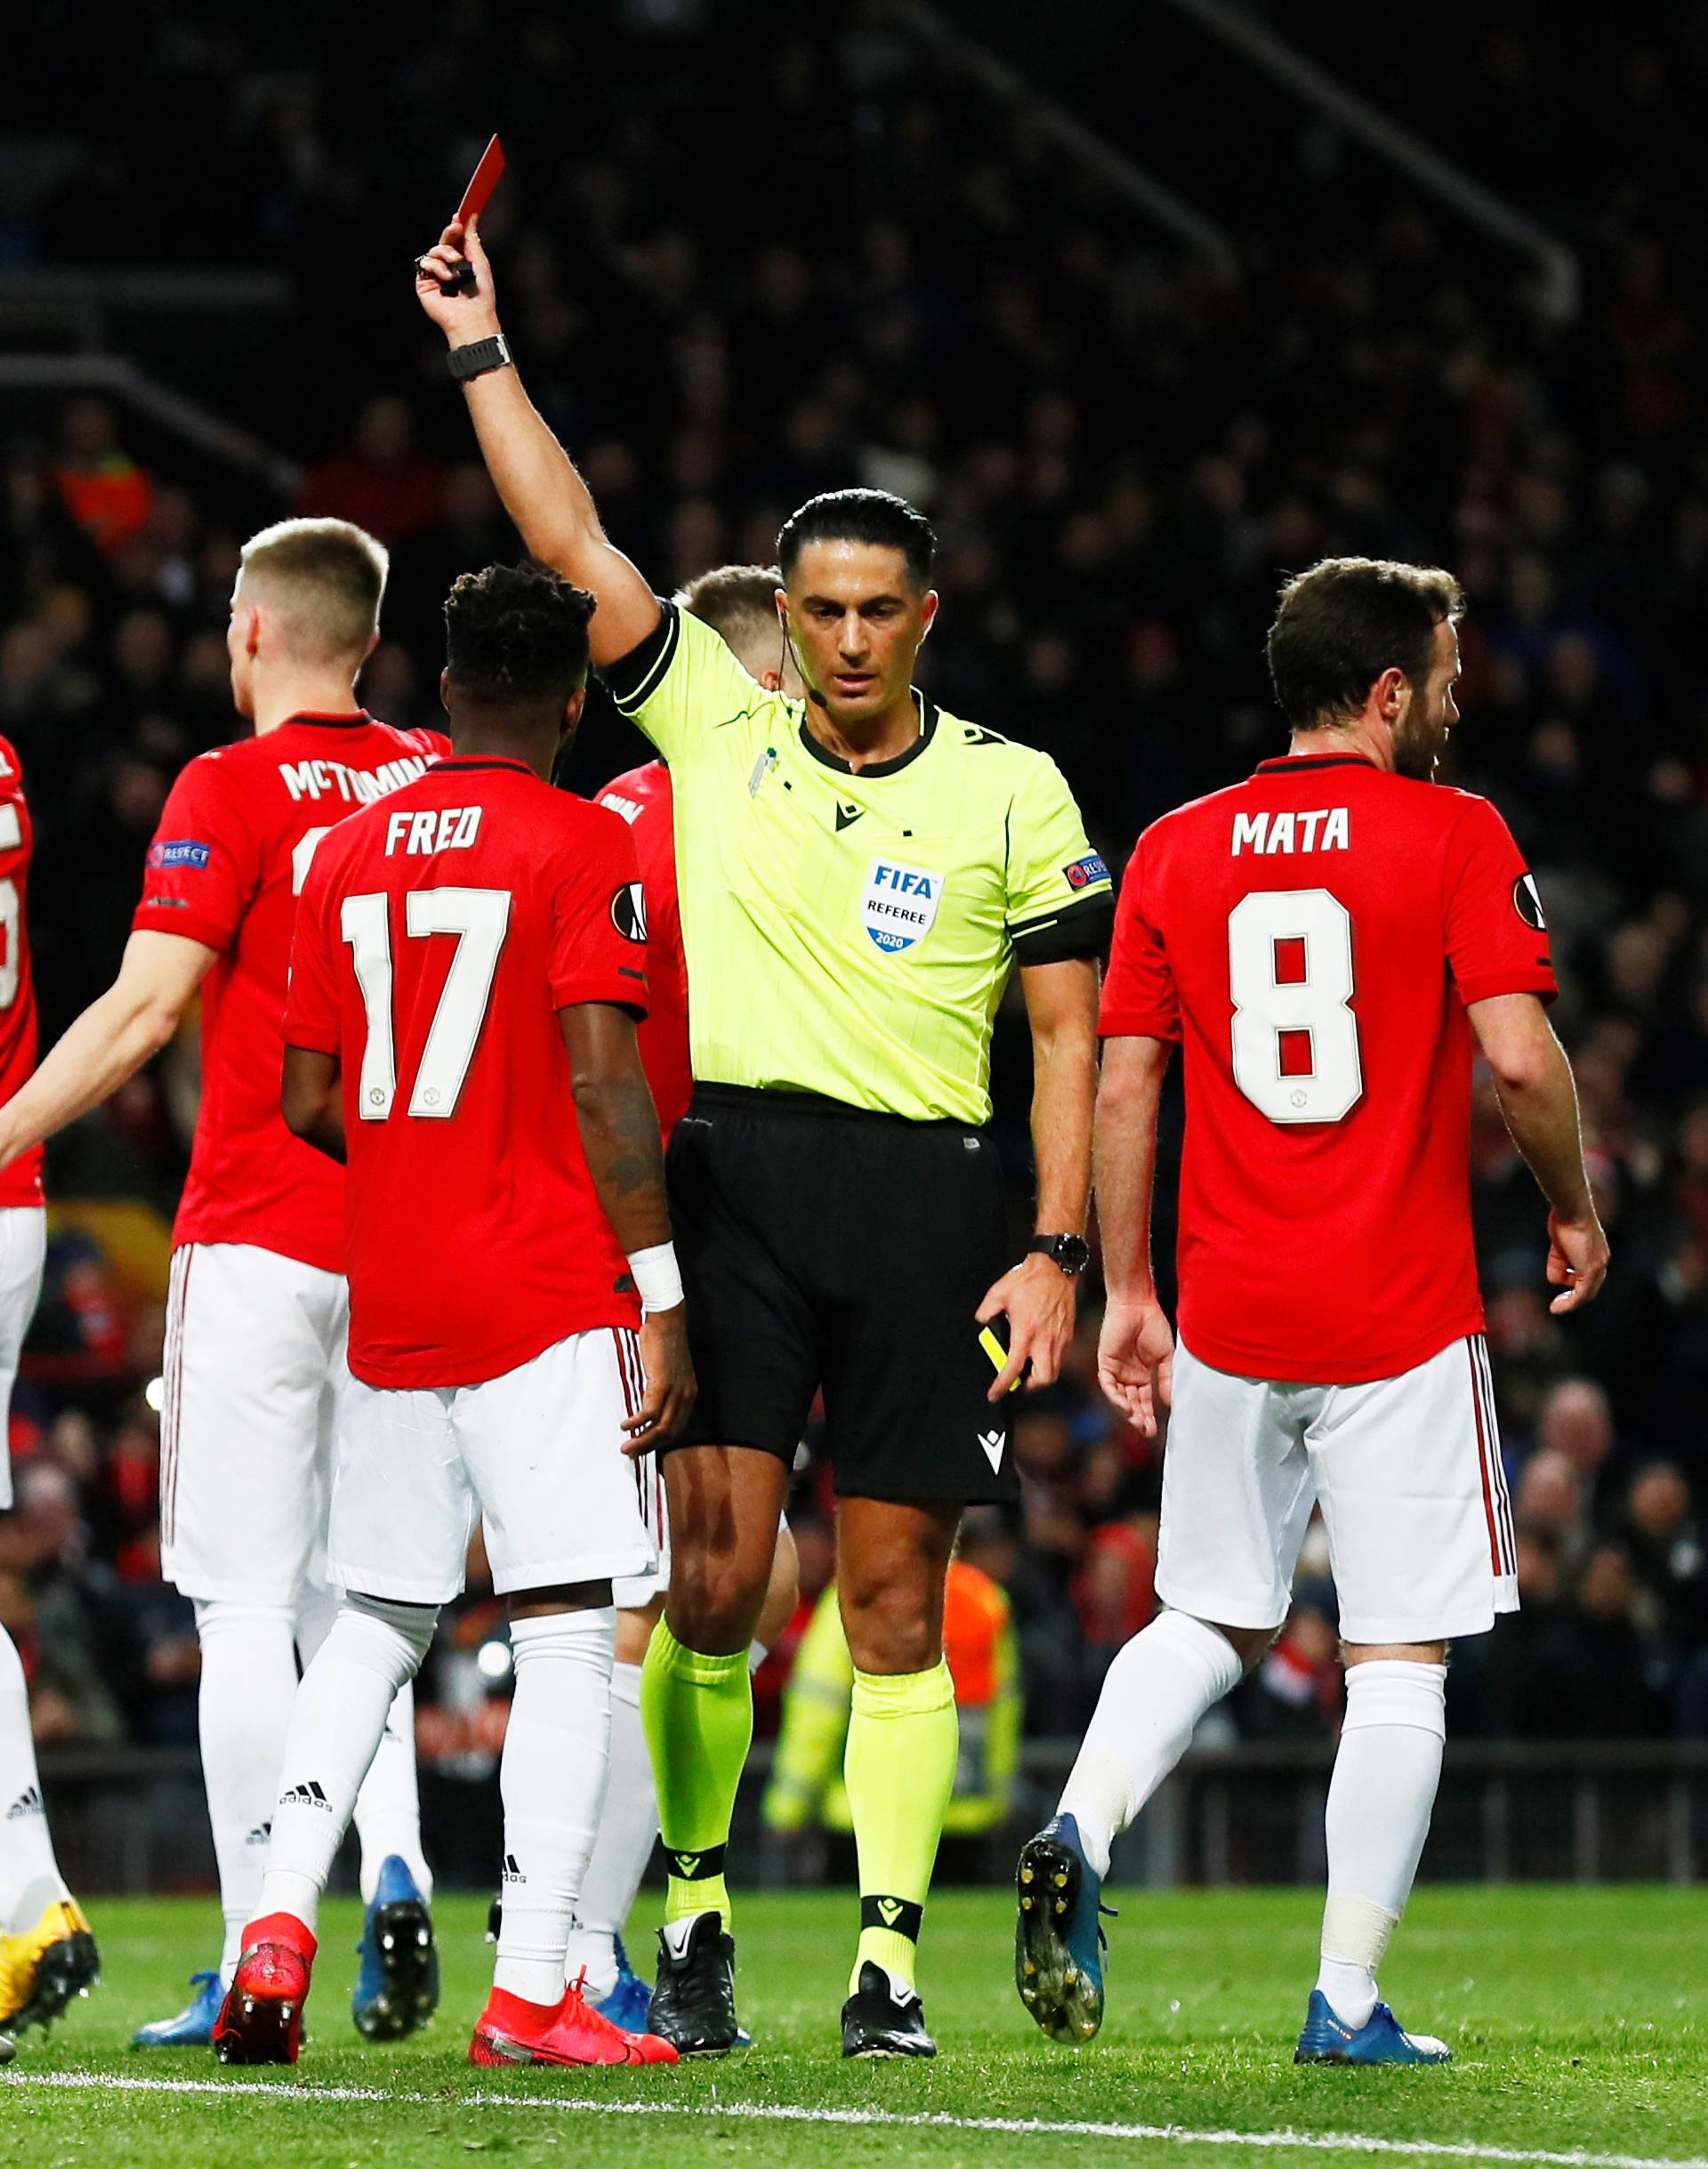 Europa League - Round of 32 Second Leg - Manchester United v Club Brugge